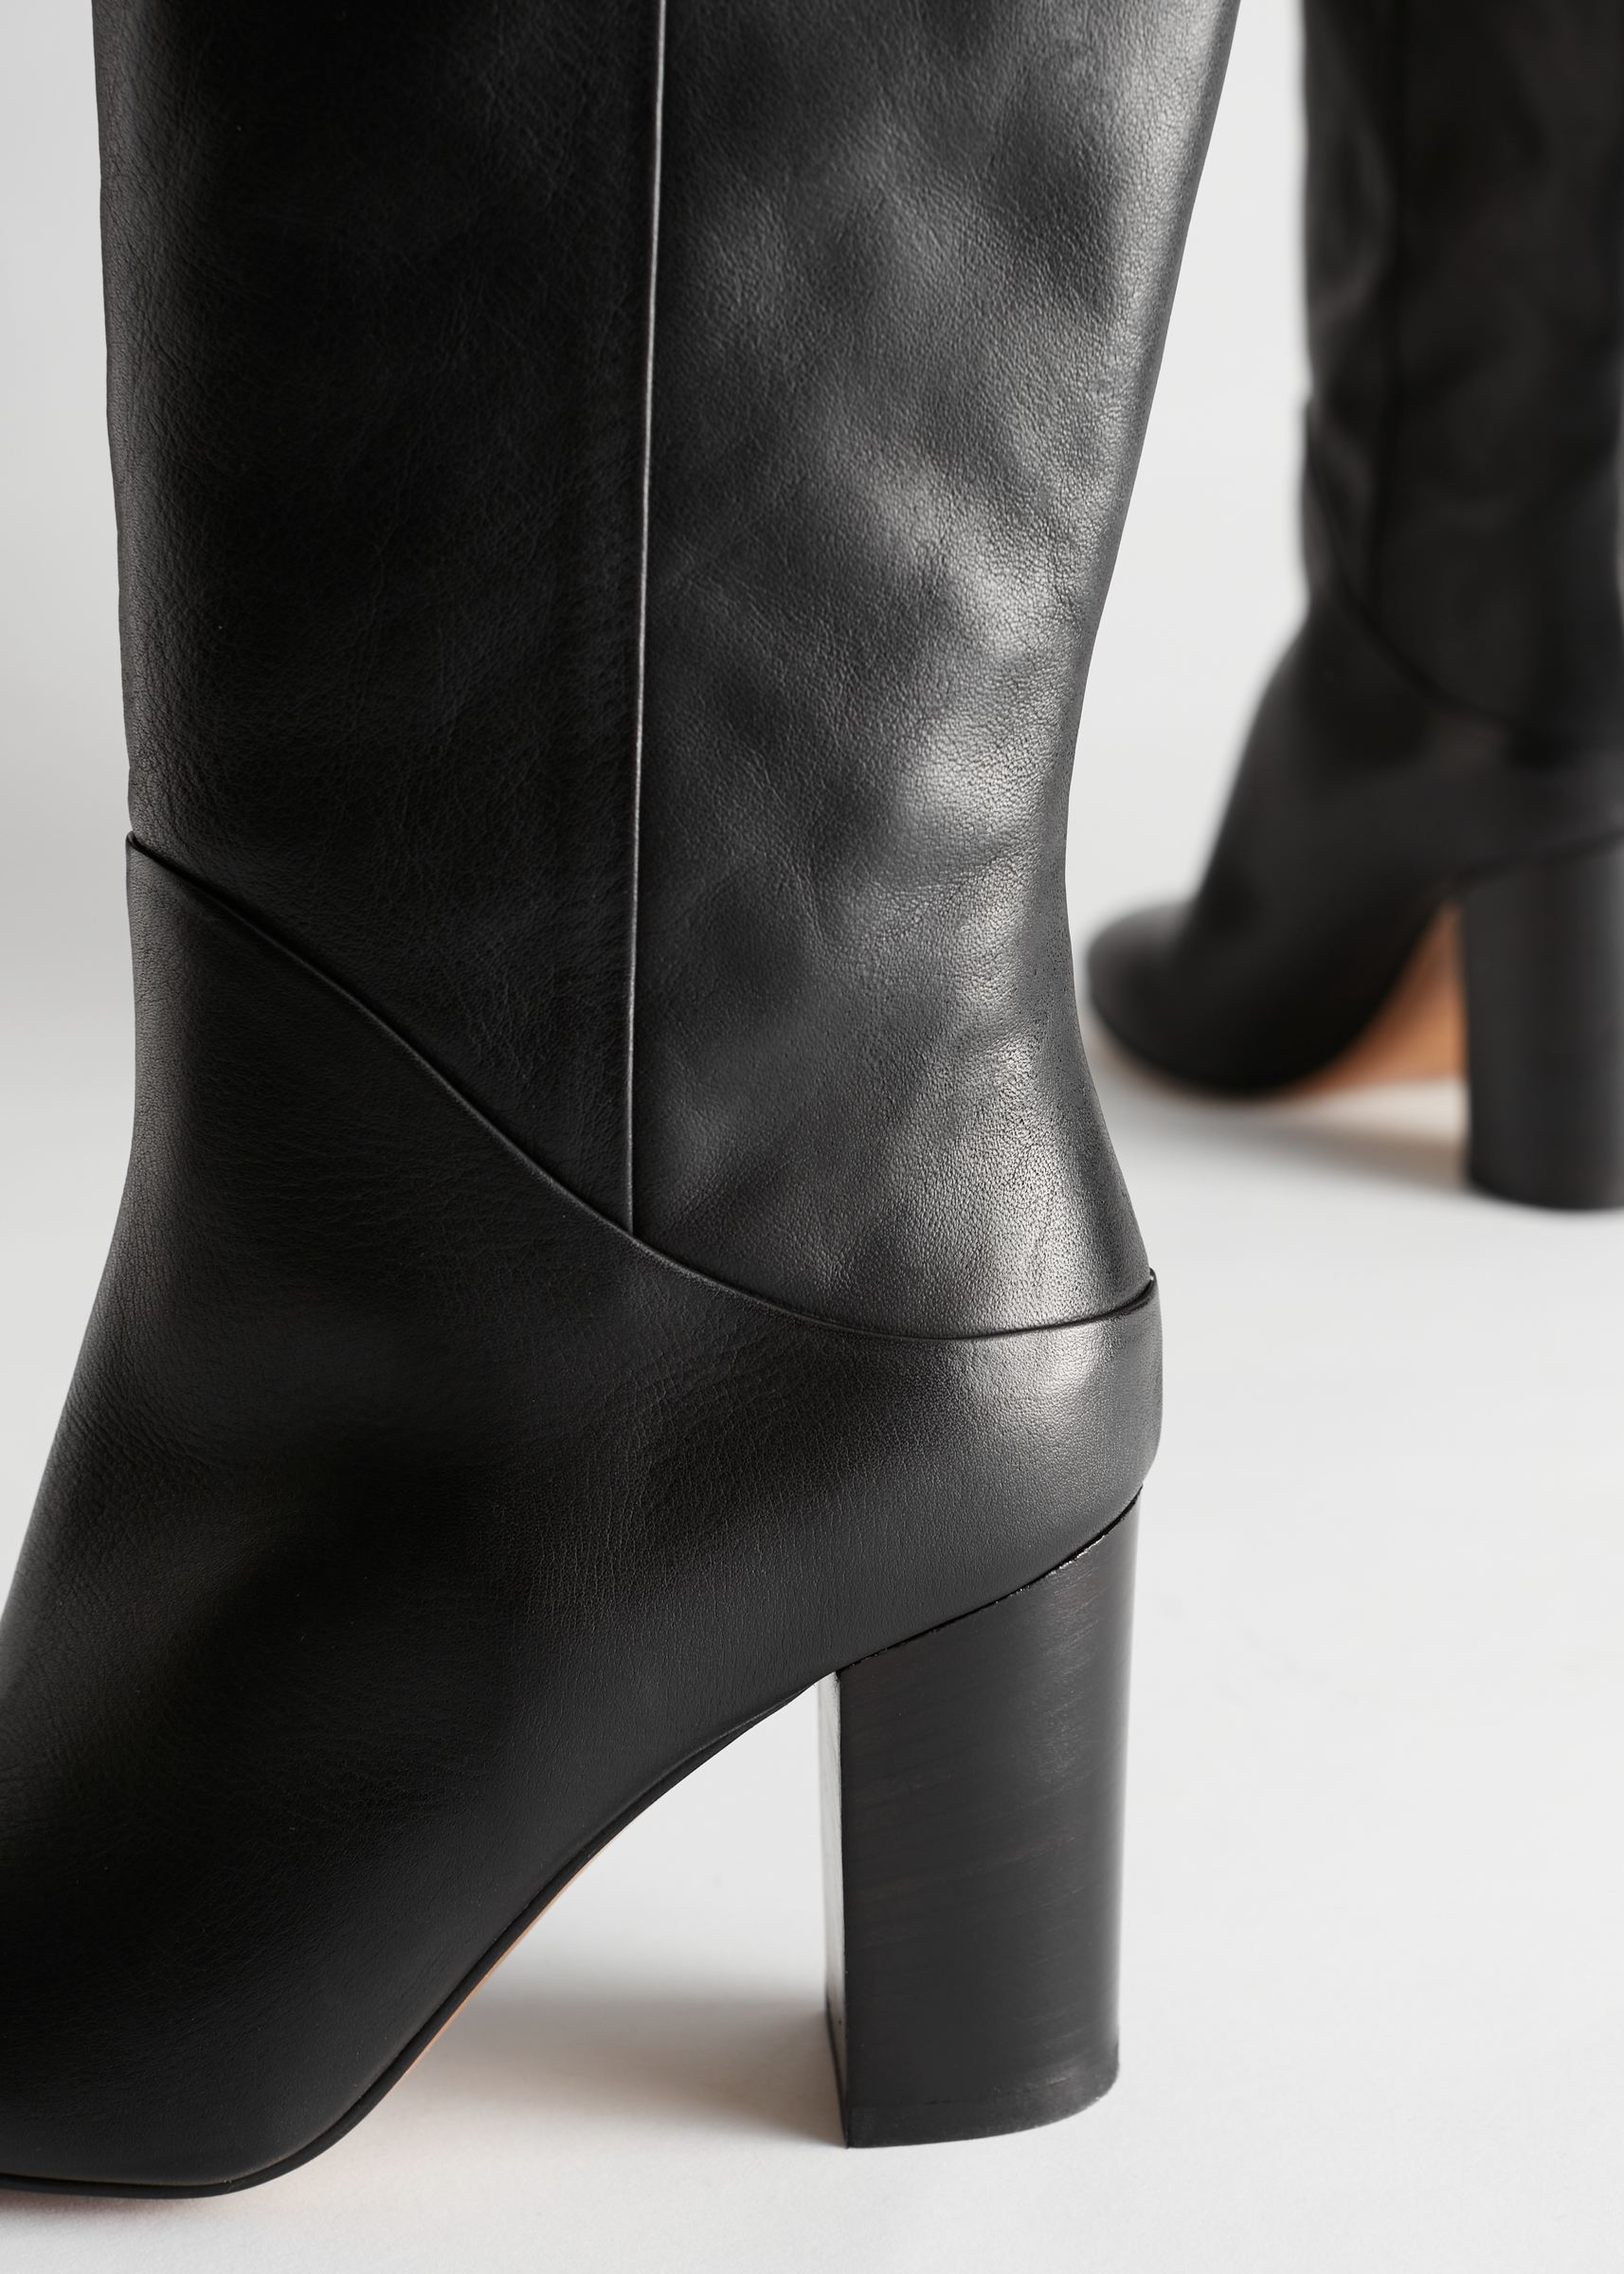 Chrome Free Tanned Leather Knee High Boots Black   Upp till